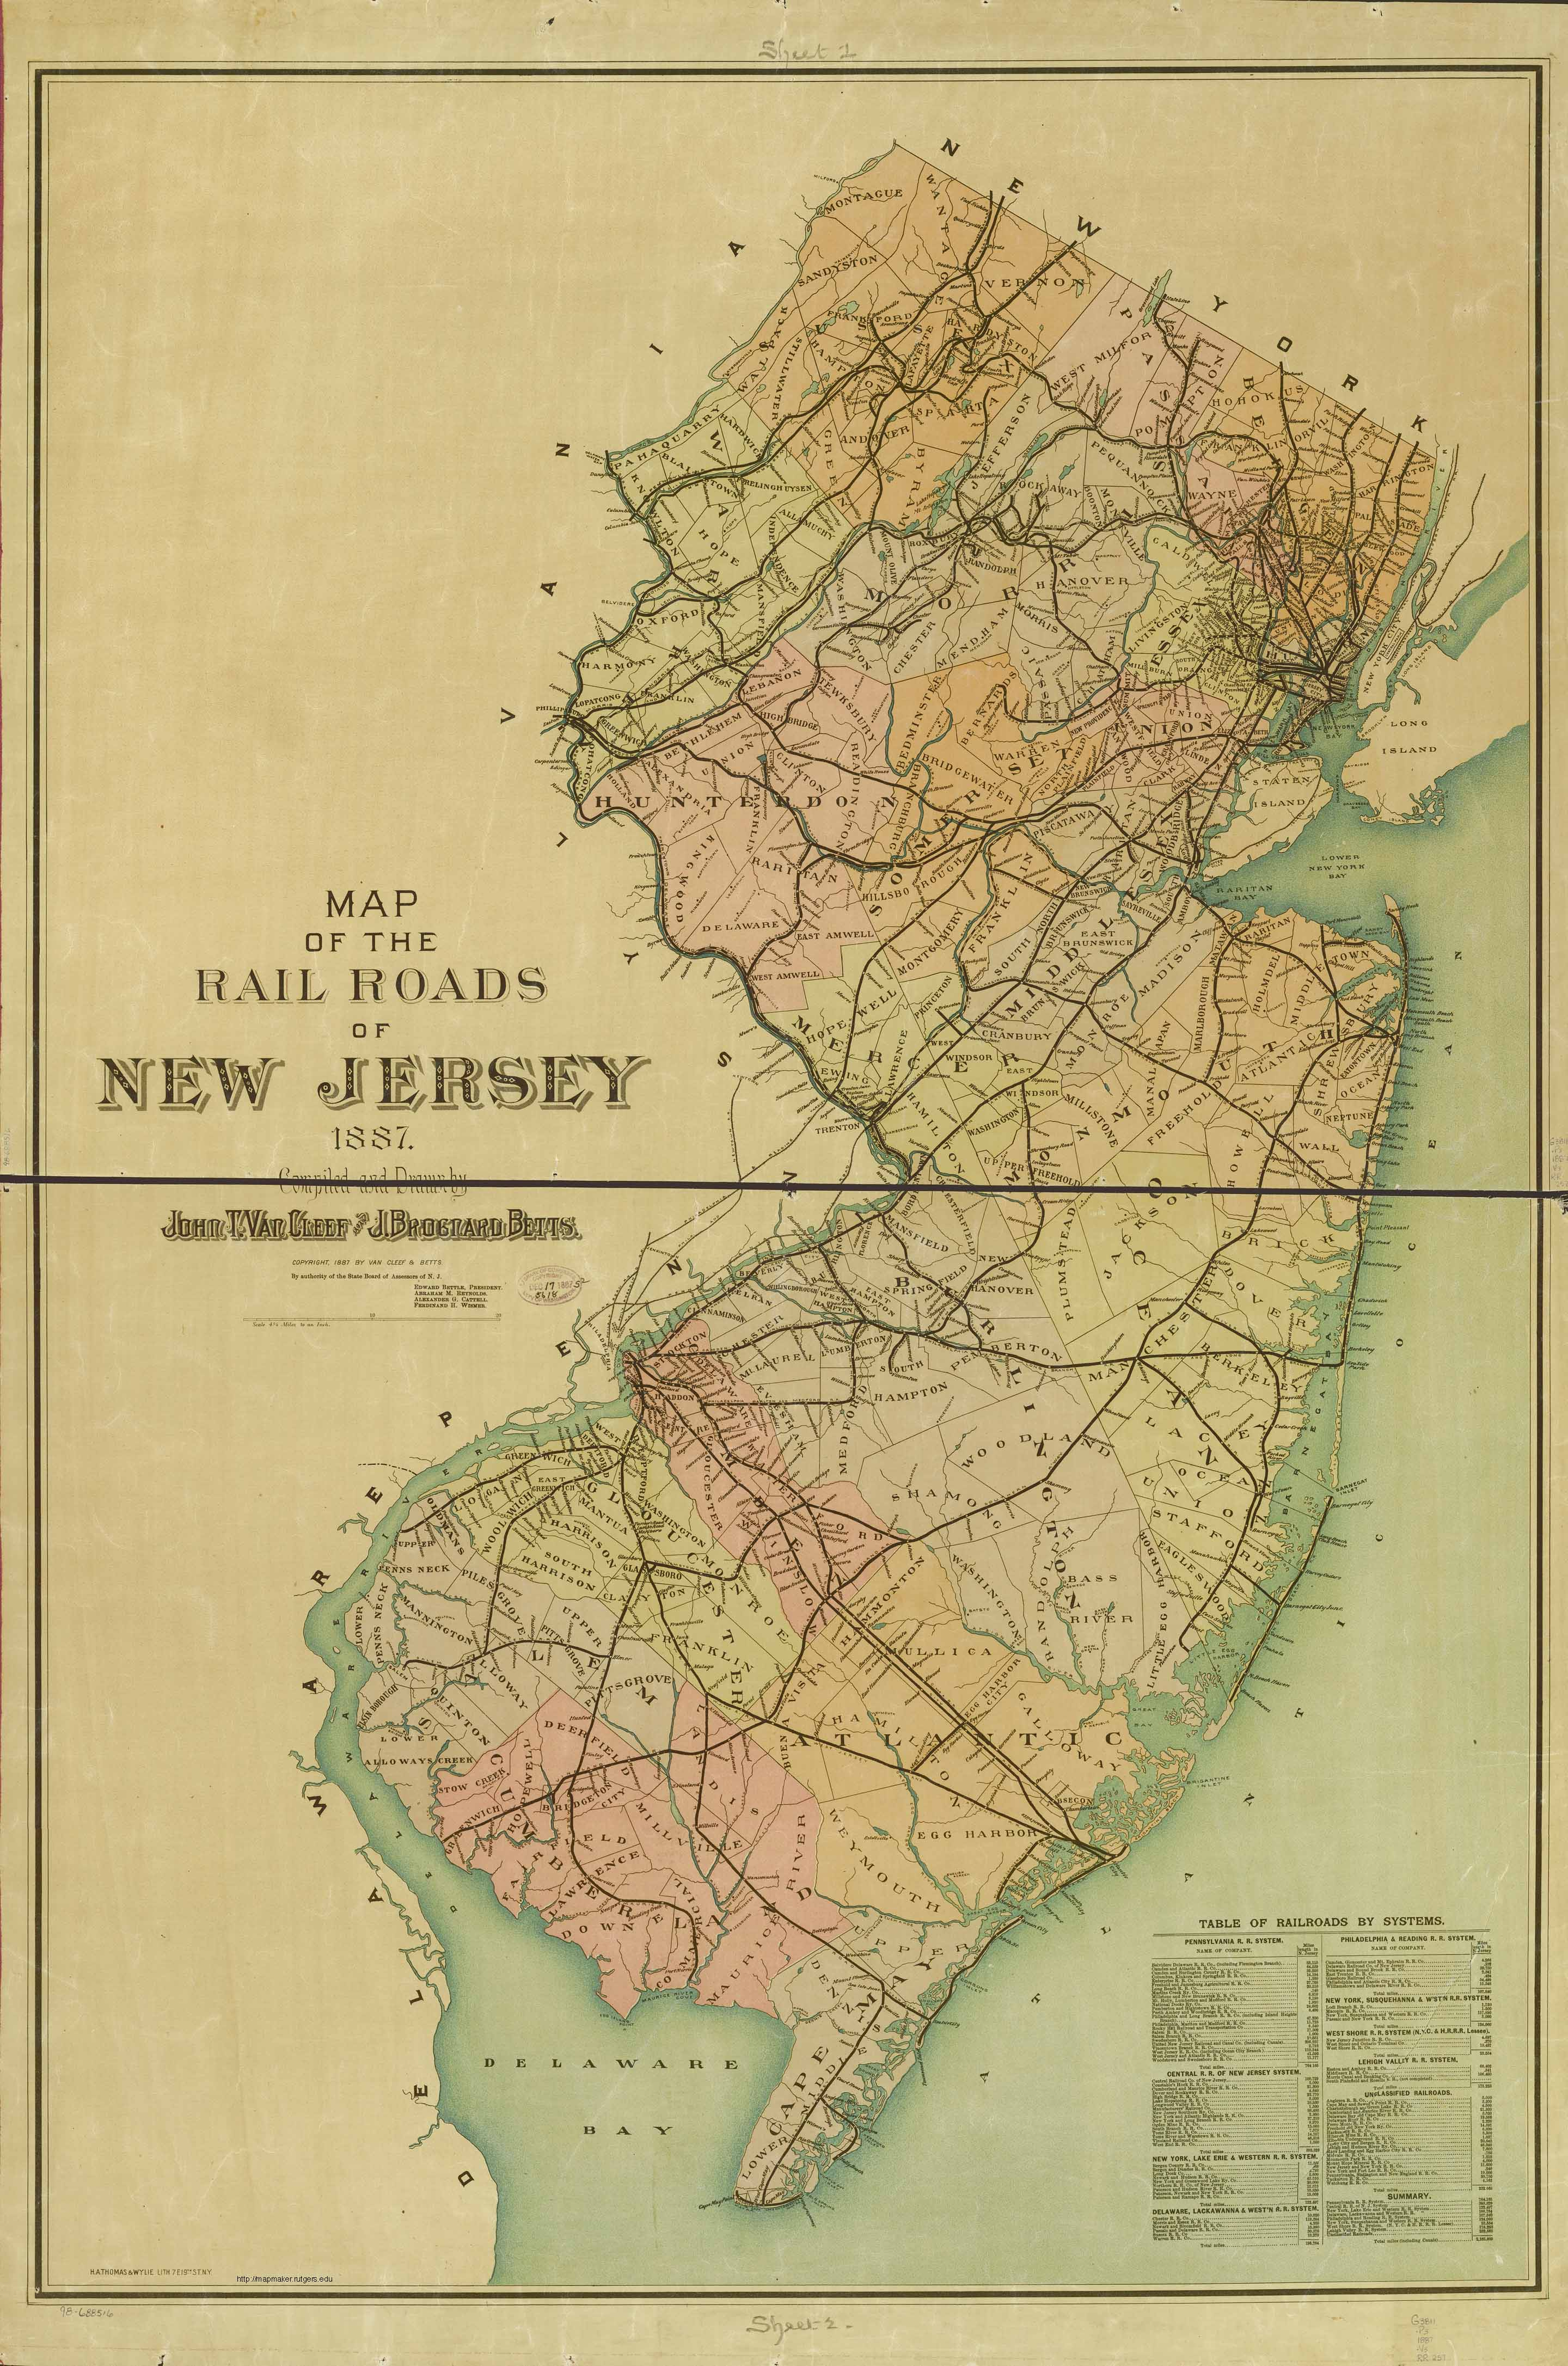 Historical New Jersey Railroad Maps